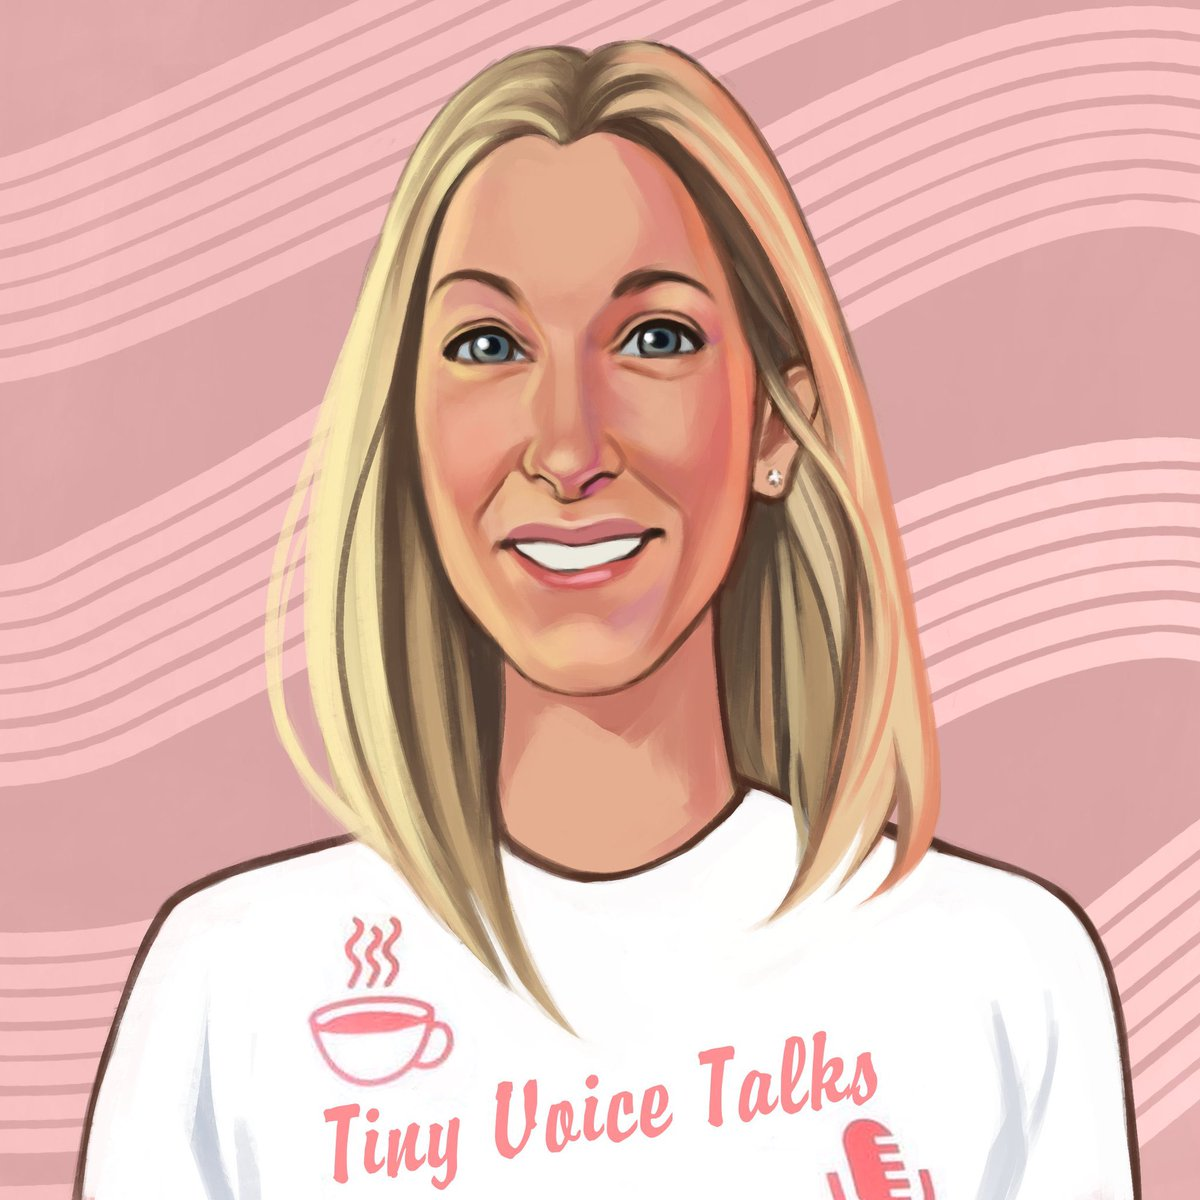 @TheCovatar have gone one better and changed the t-shirt to the name of my podcast. Yay! ❤️❤️❤️